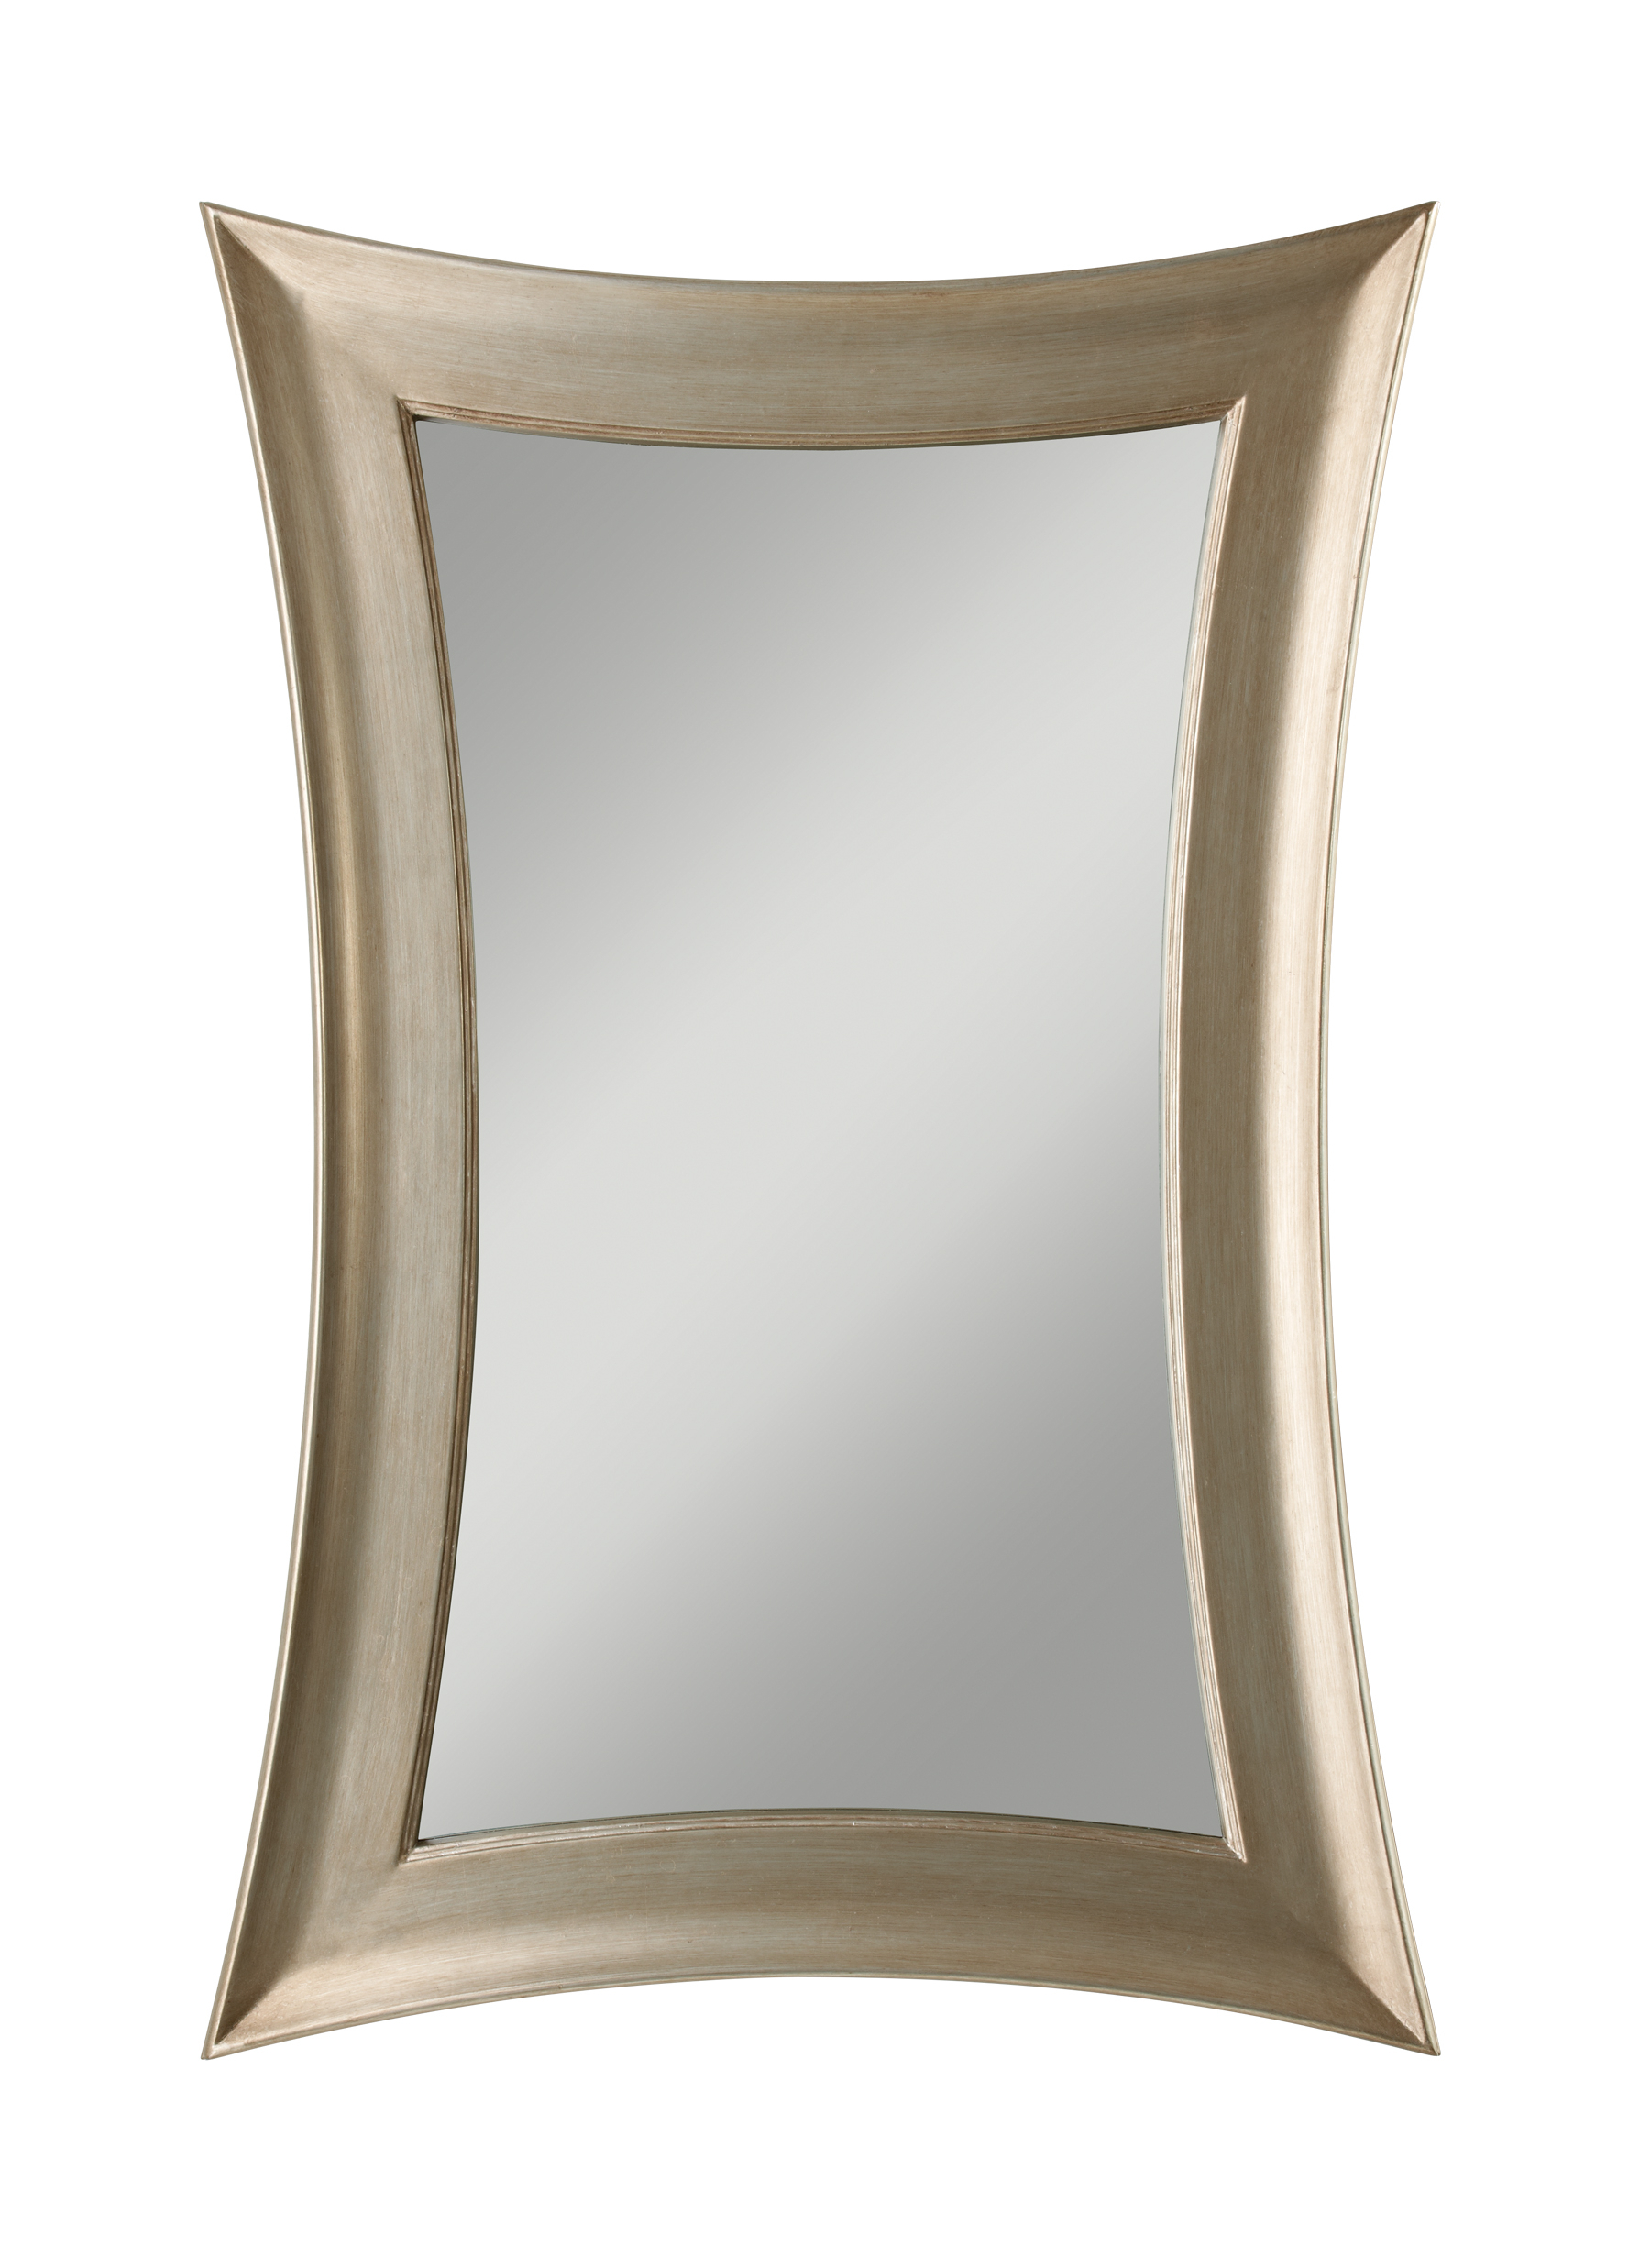 Well Known Mr1122Aslf,antique Silver Leaf Mirror,antique Silver Leaf Throughout Silver Leaf Wall Mirrors (View 17 of 20)